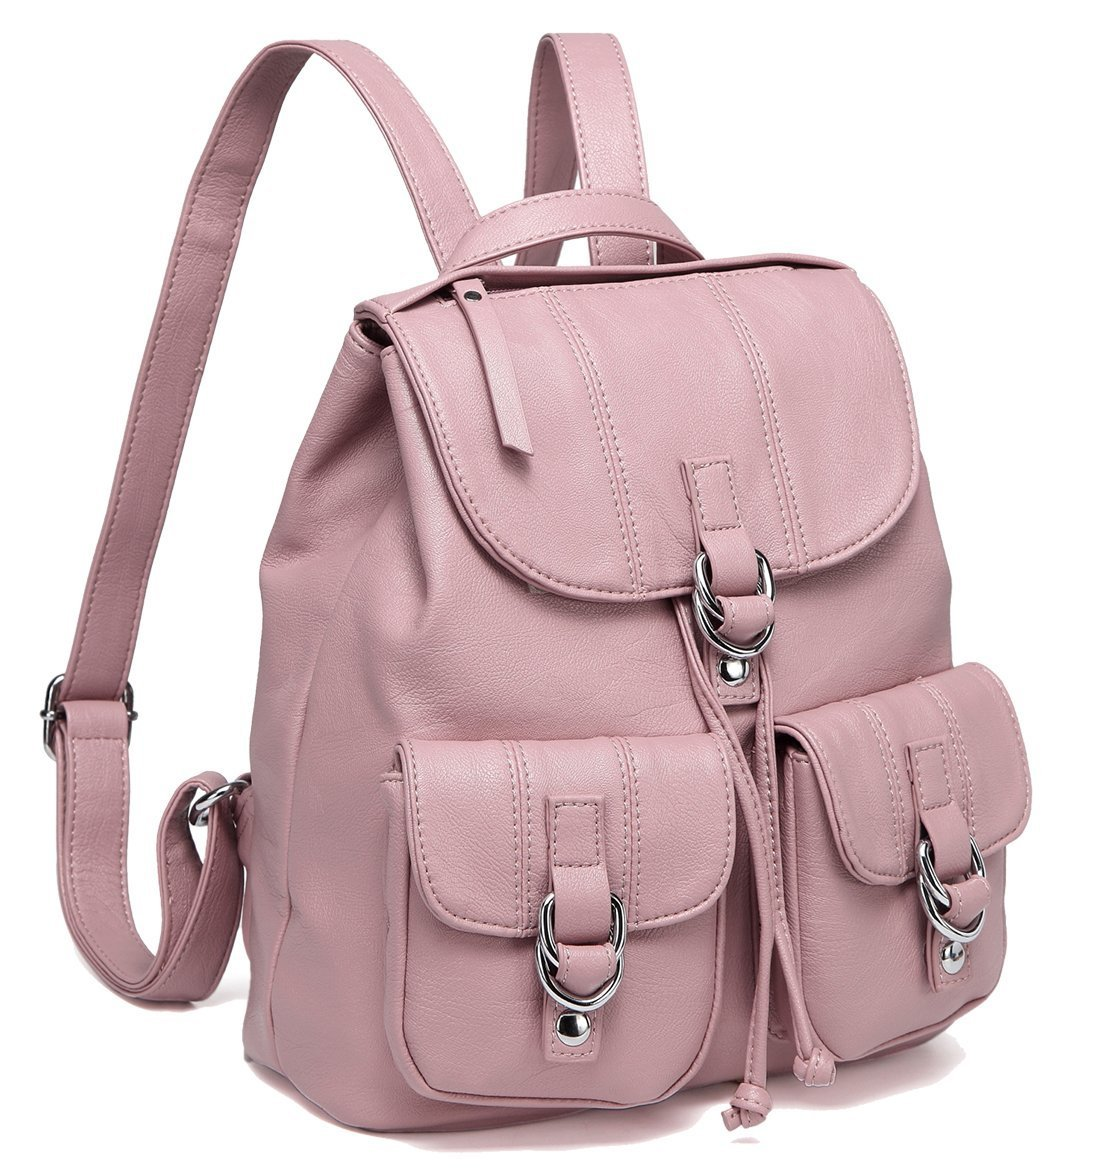 Backpack Purse for Women,VASCHY Fashion Faux Leather Buckle FlapDrawstring Backpack for College with Two Front Pockets Pink